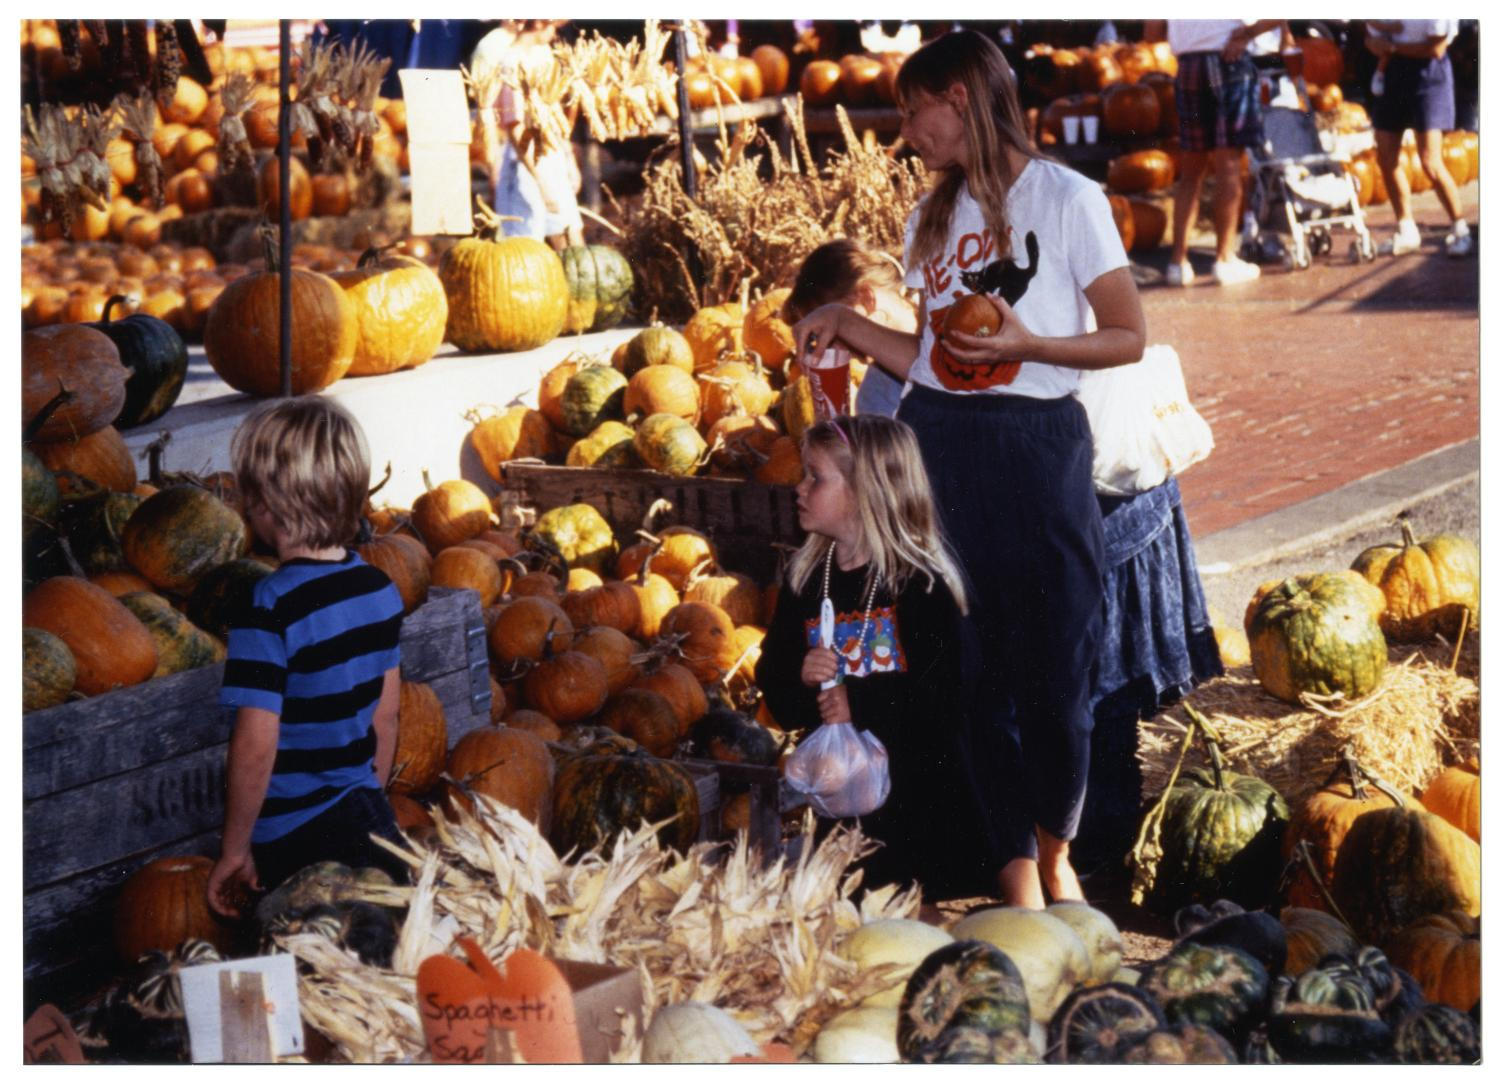 [Pumpkins at the Dallas Farmer's Market]                                                                                                      [Sequence #]: 1 of 2